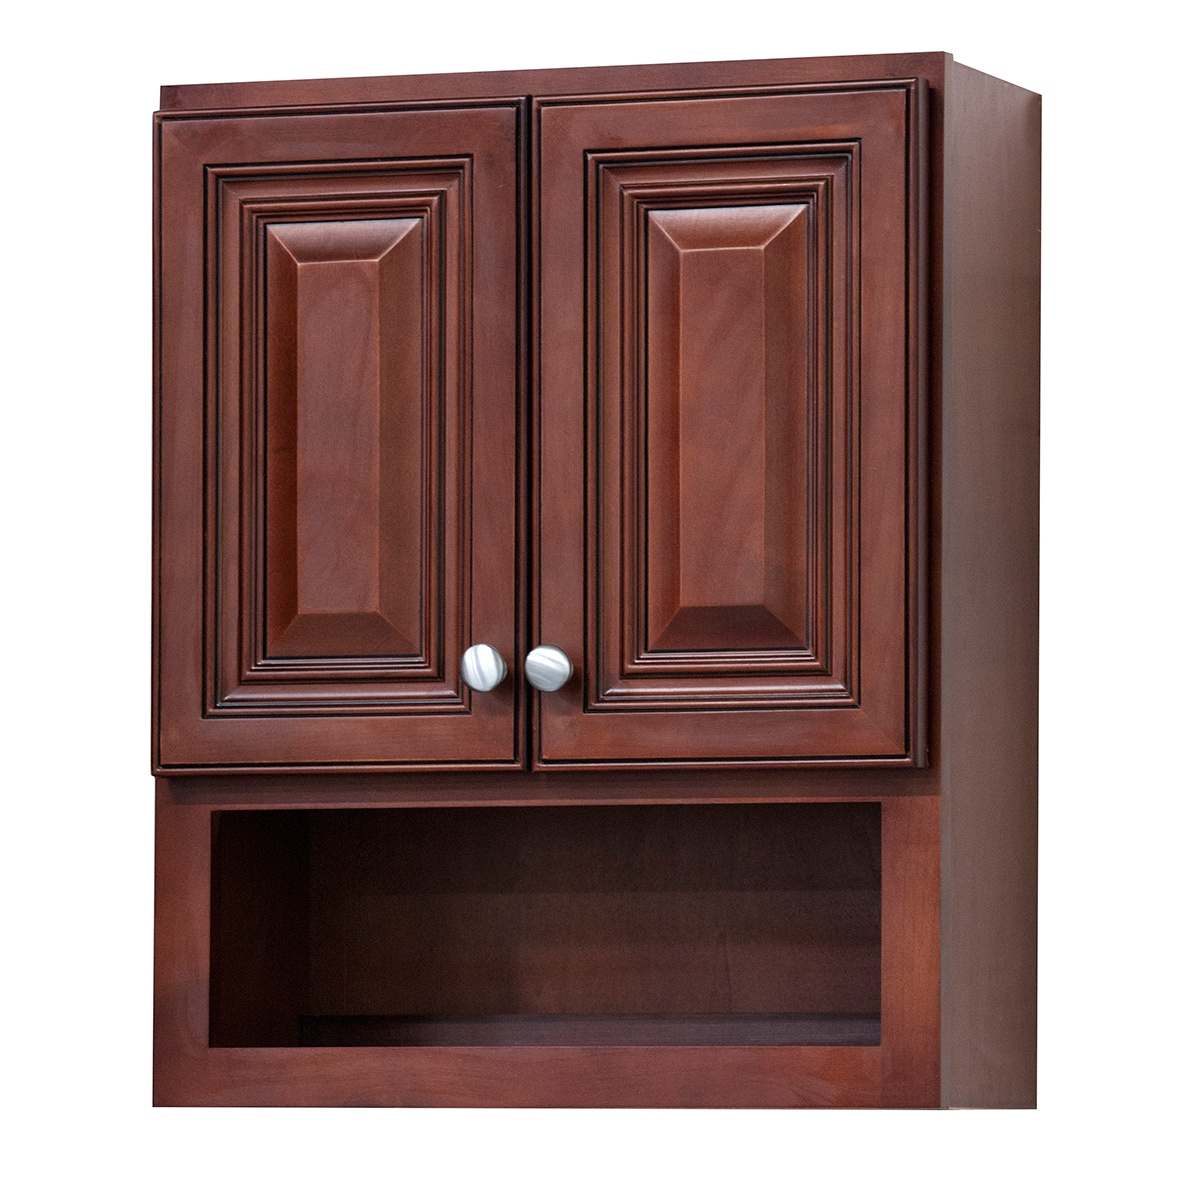 bathroom wall cabinet overstock shopping big discounts on bath